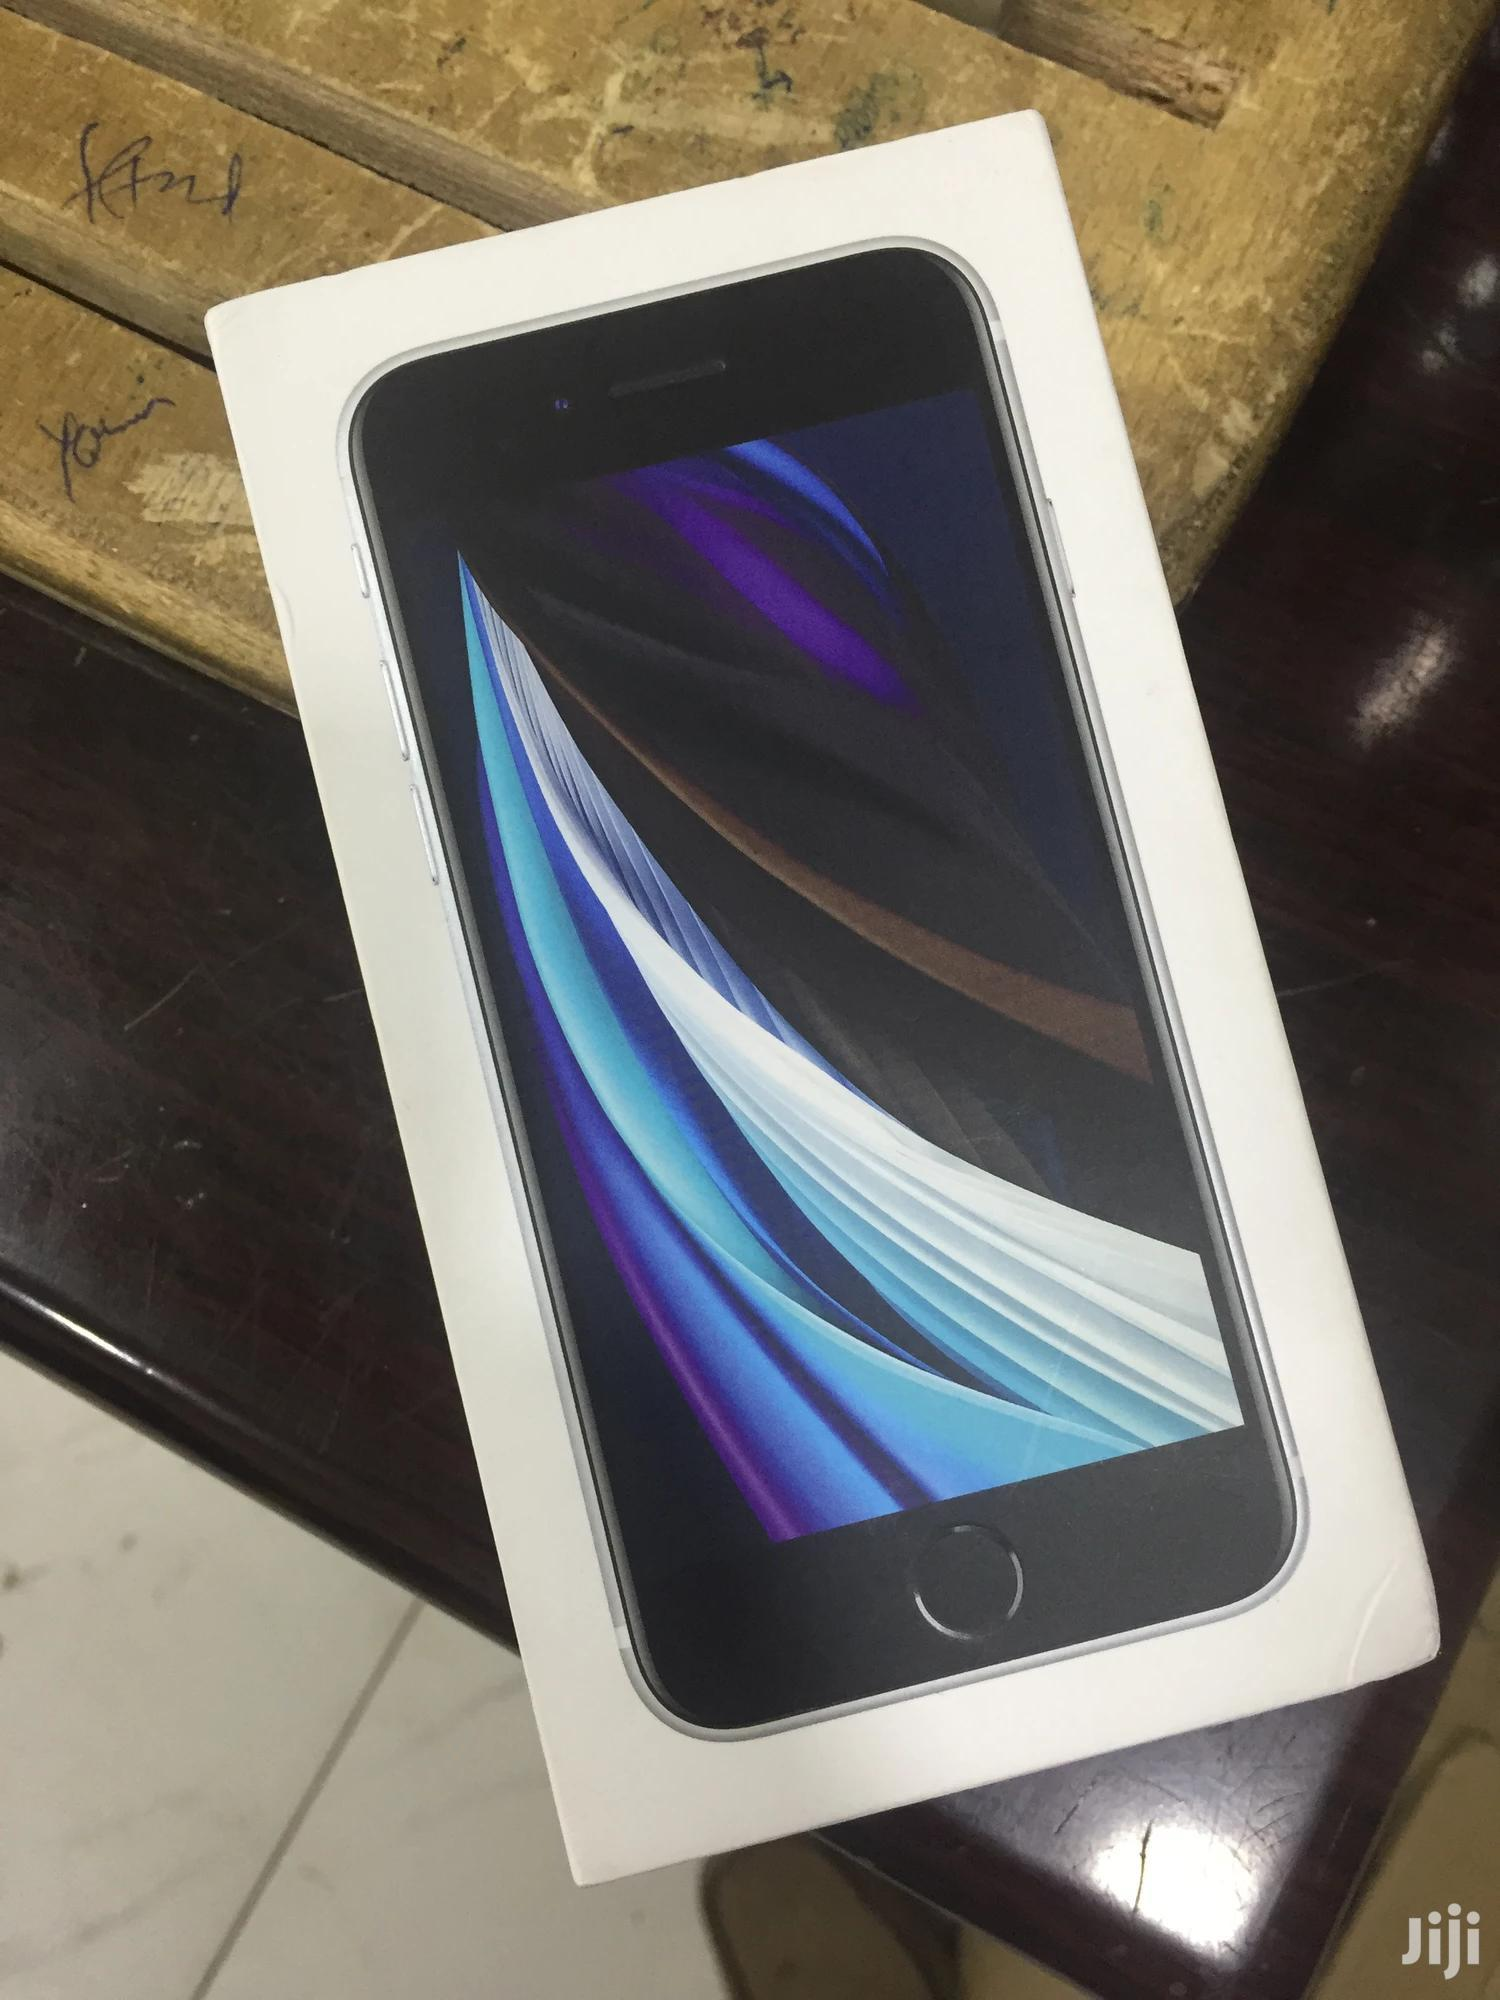 New Apple iPhone SE (2020) 64 GB | Mobile Phones for sale in Accra Metropolitan, Greater Accra, Ghana